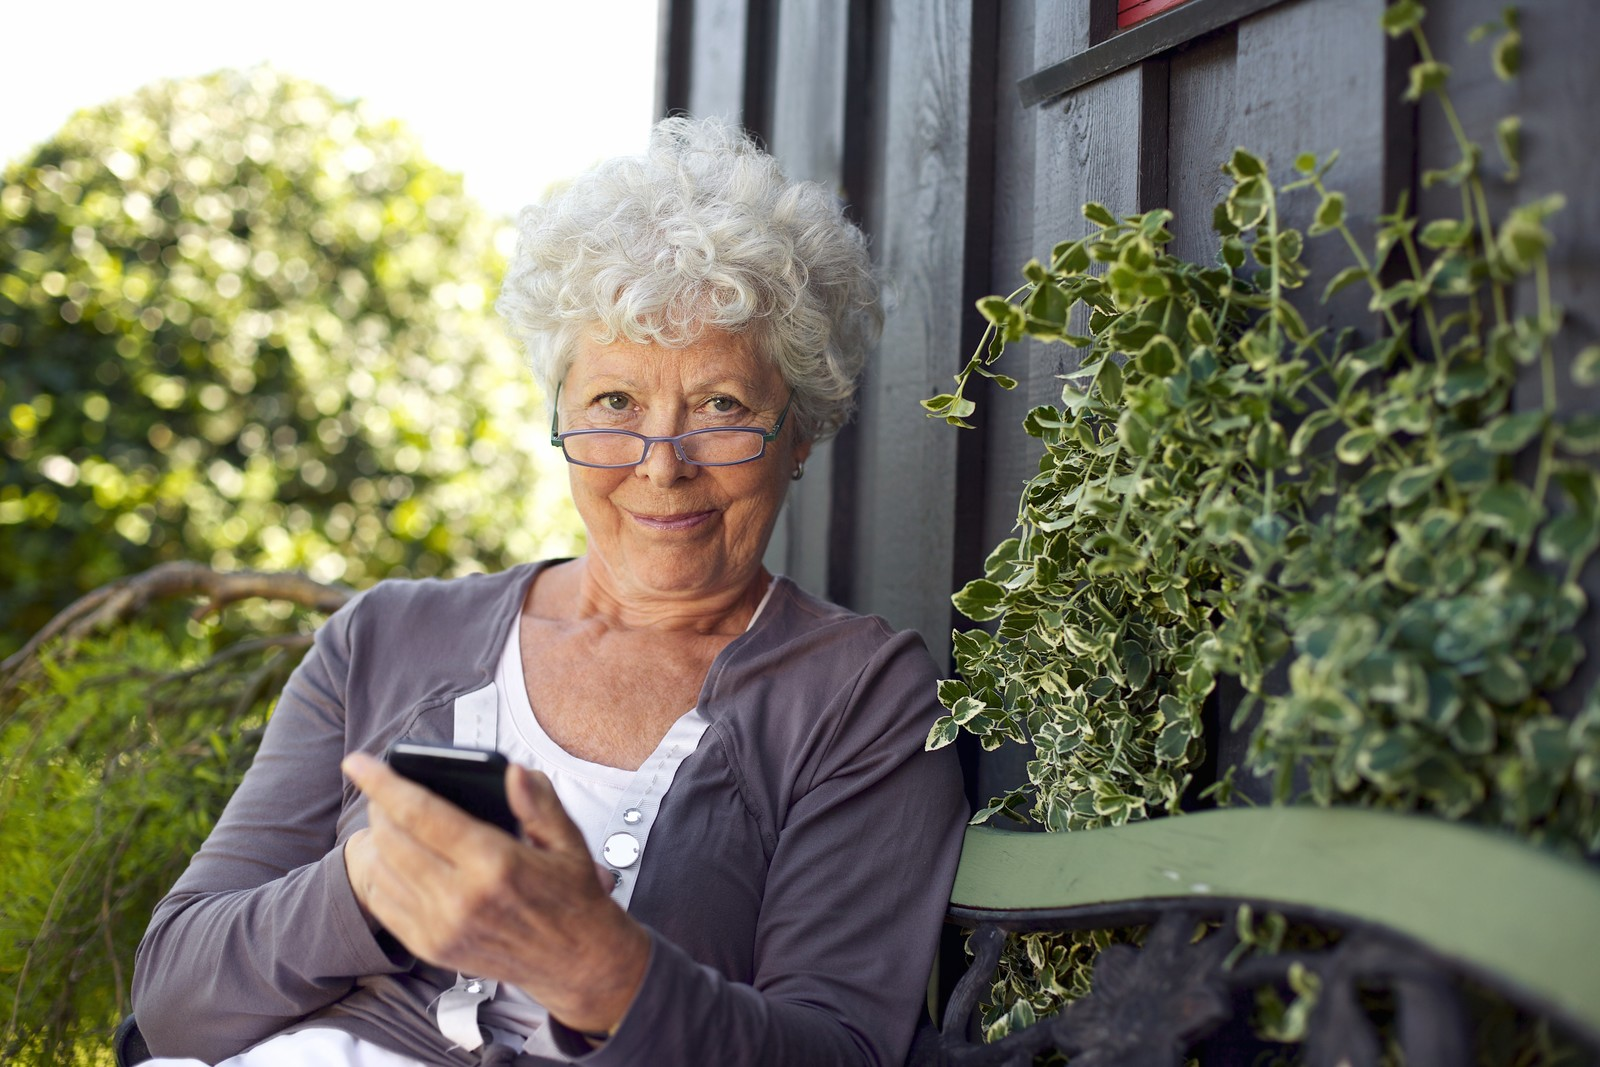 New Texting Scams Seniors Need to Know About Now - Senior woman enjoying the outdoors sitting on a bench in the shade texting on her smart phone